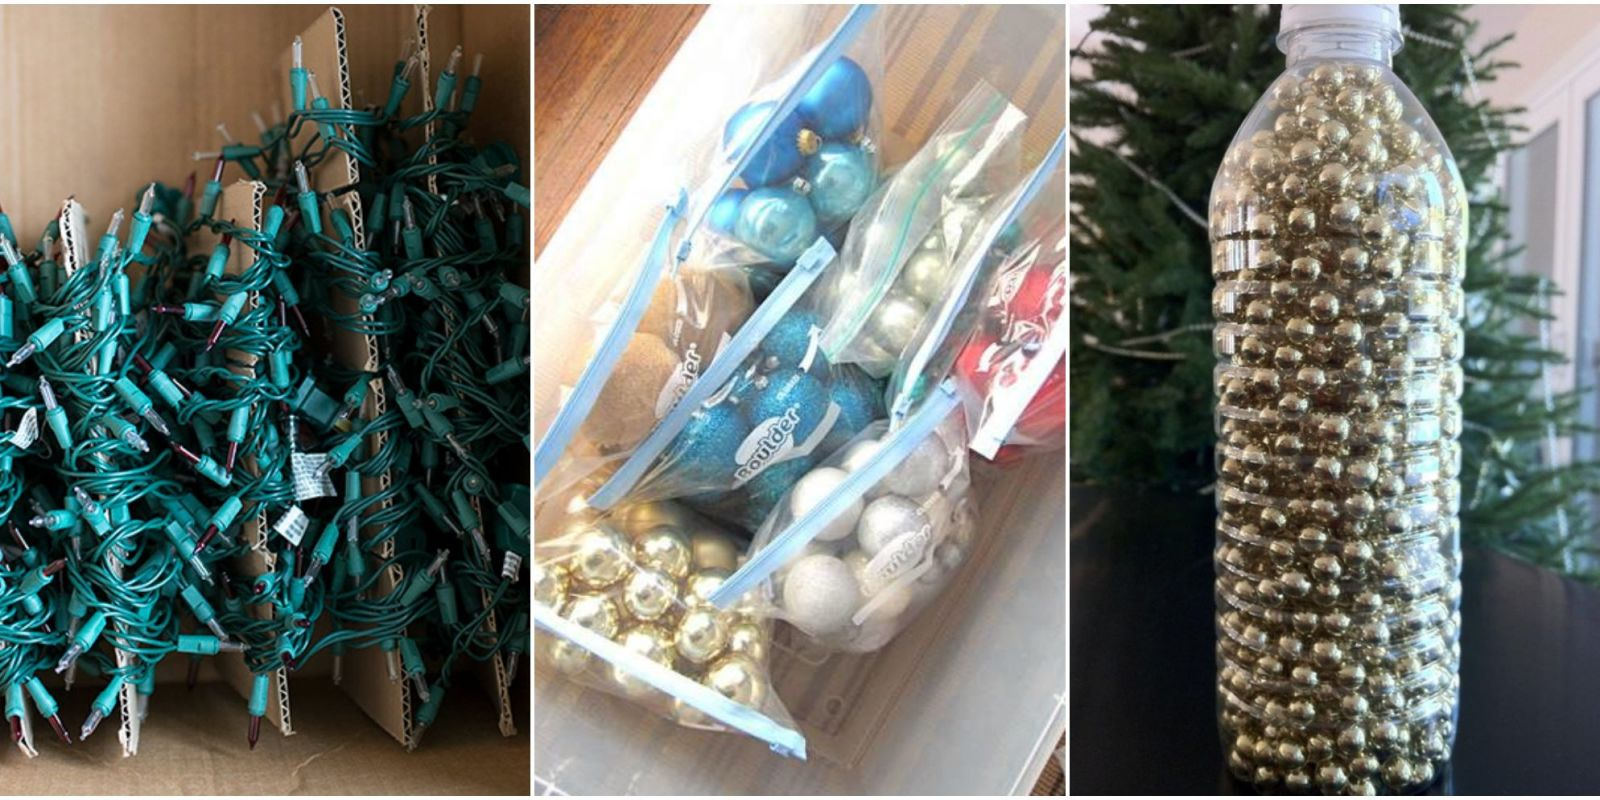 How to start a christmas decor business - Christmas Decoration Storage Ideas How To Store Fake Christmas Trees Holiday Decor